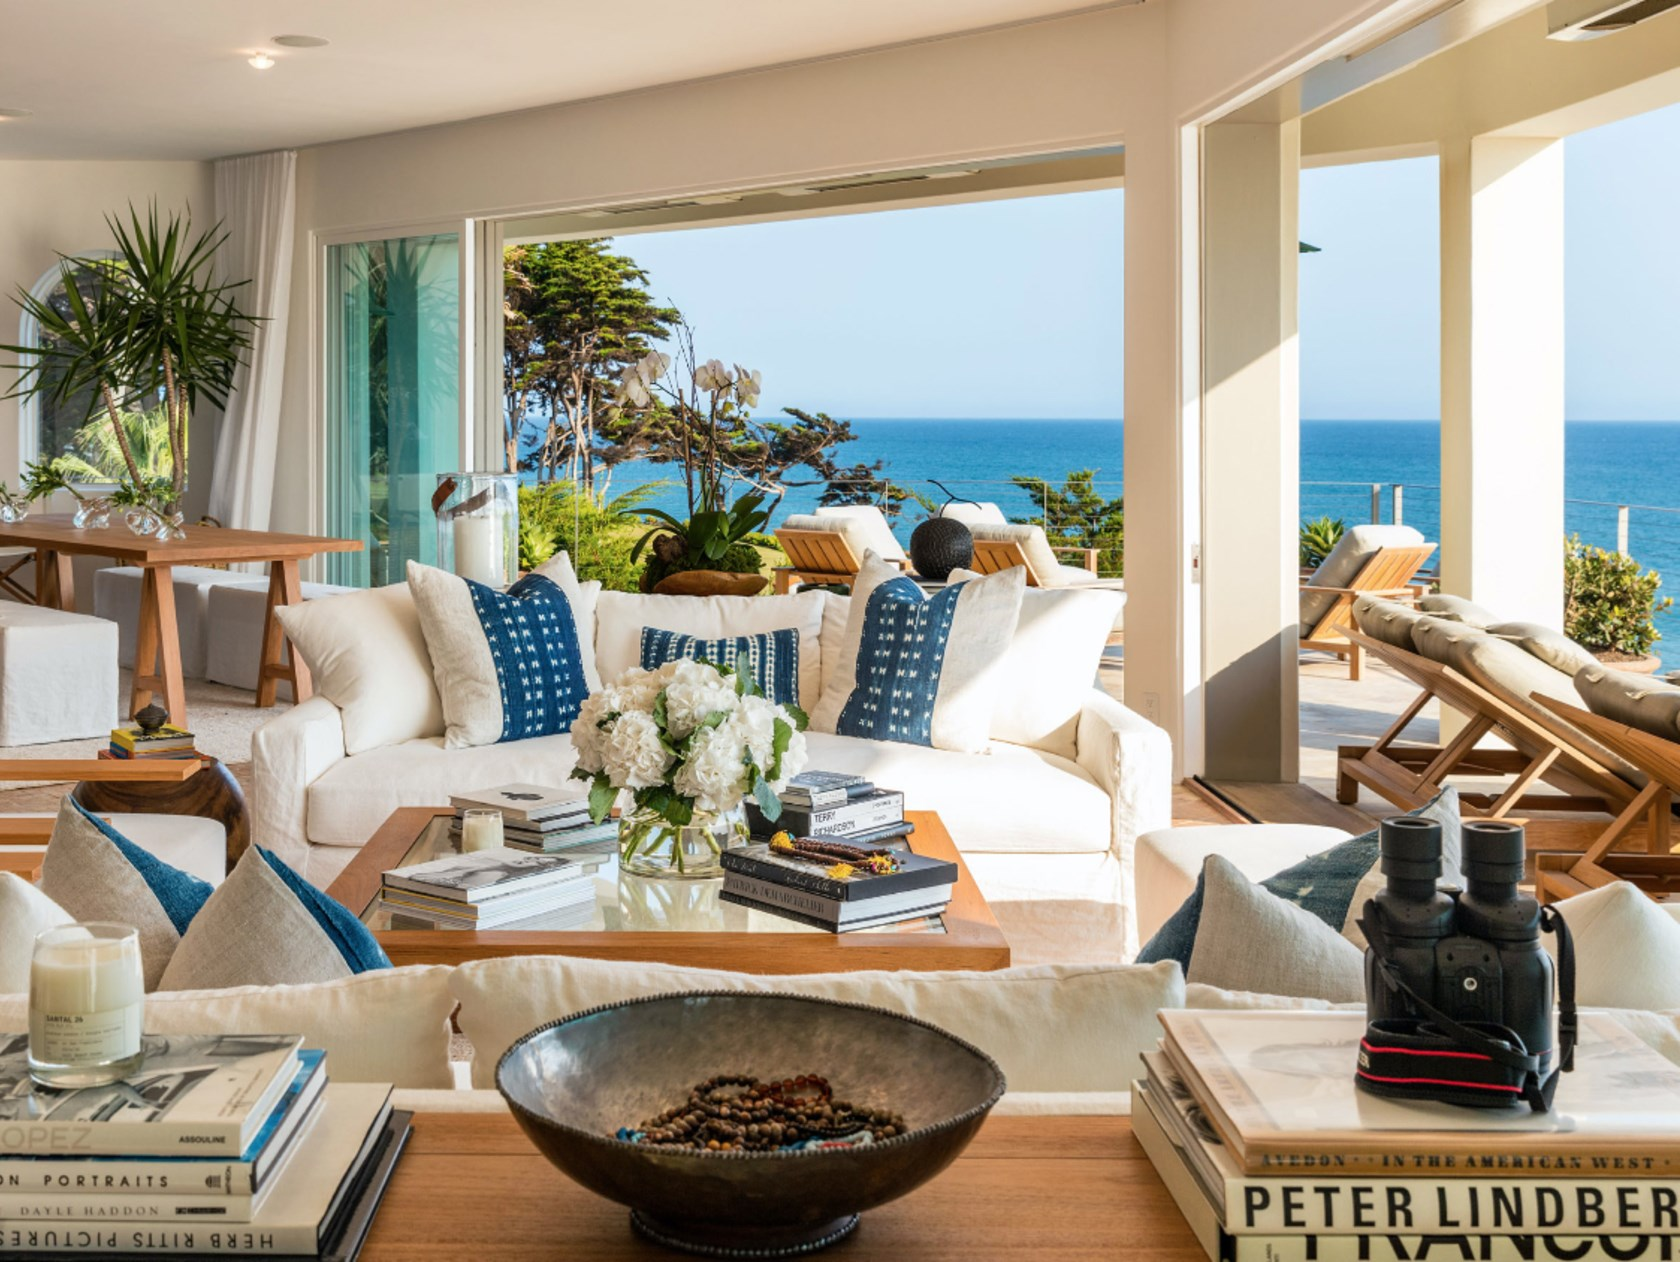 "With floor-to-ceilings windows throughout, the private beachfront home enjoys views of the Pacific Ocean from the openplan Hamptons-style living room. Photo: [Chris Cortazzo Malibu Real Estate](http://www.chriscortazzo.com/|target=""_blank""